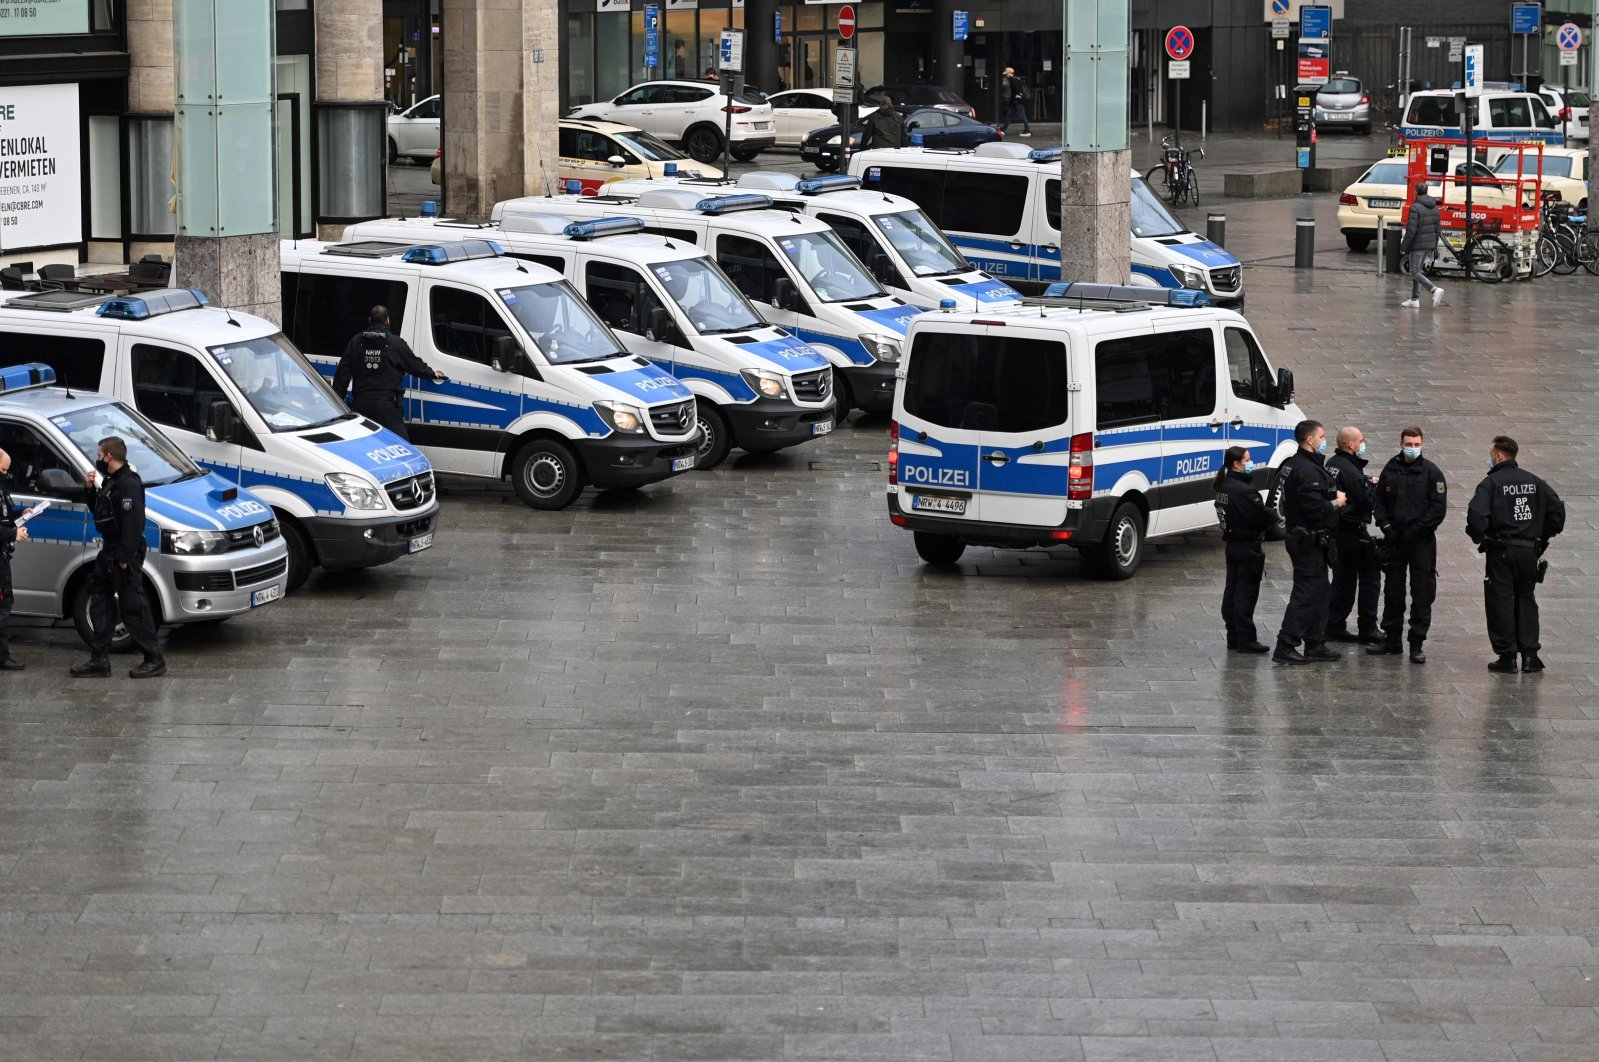 Police cars parked at the main railway station in Cologne, western Germany, Nov. 11, 2020. (AFP Photo)